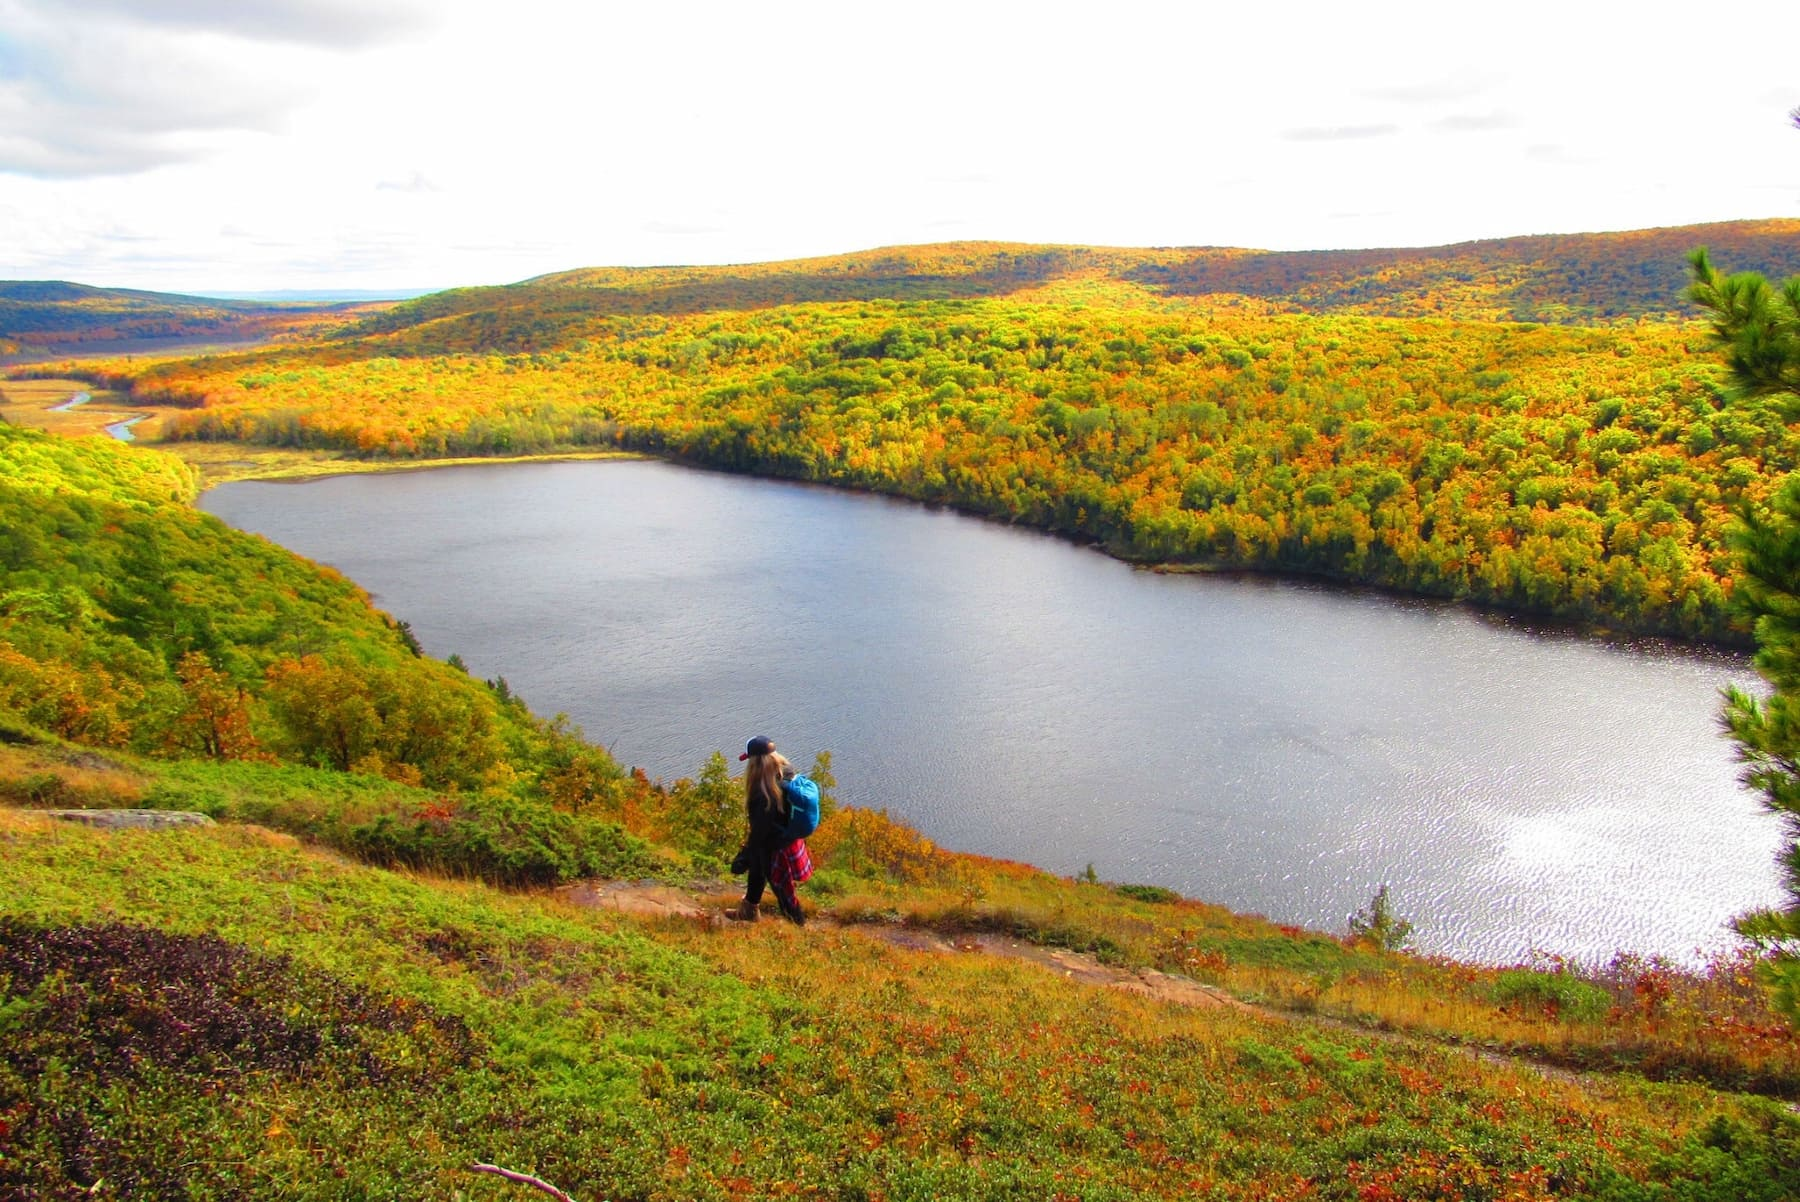 Woman hiking in the rolling hills of the Porcupine Mountains.